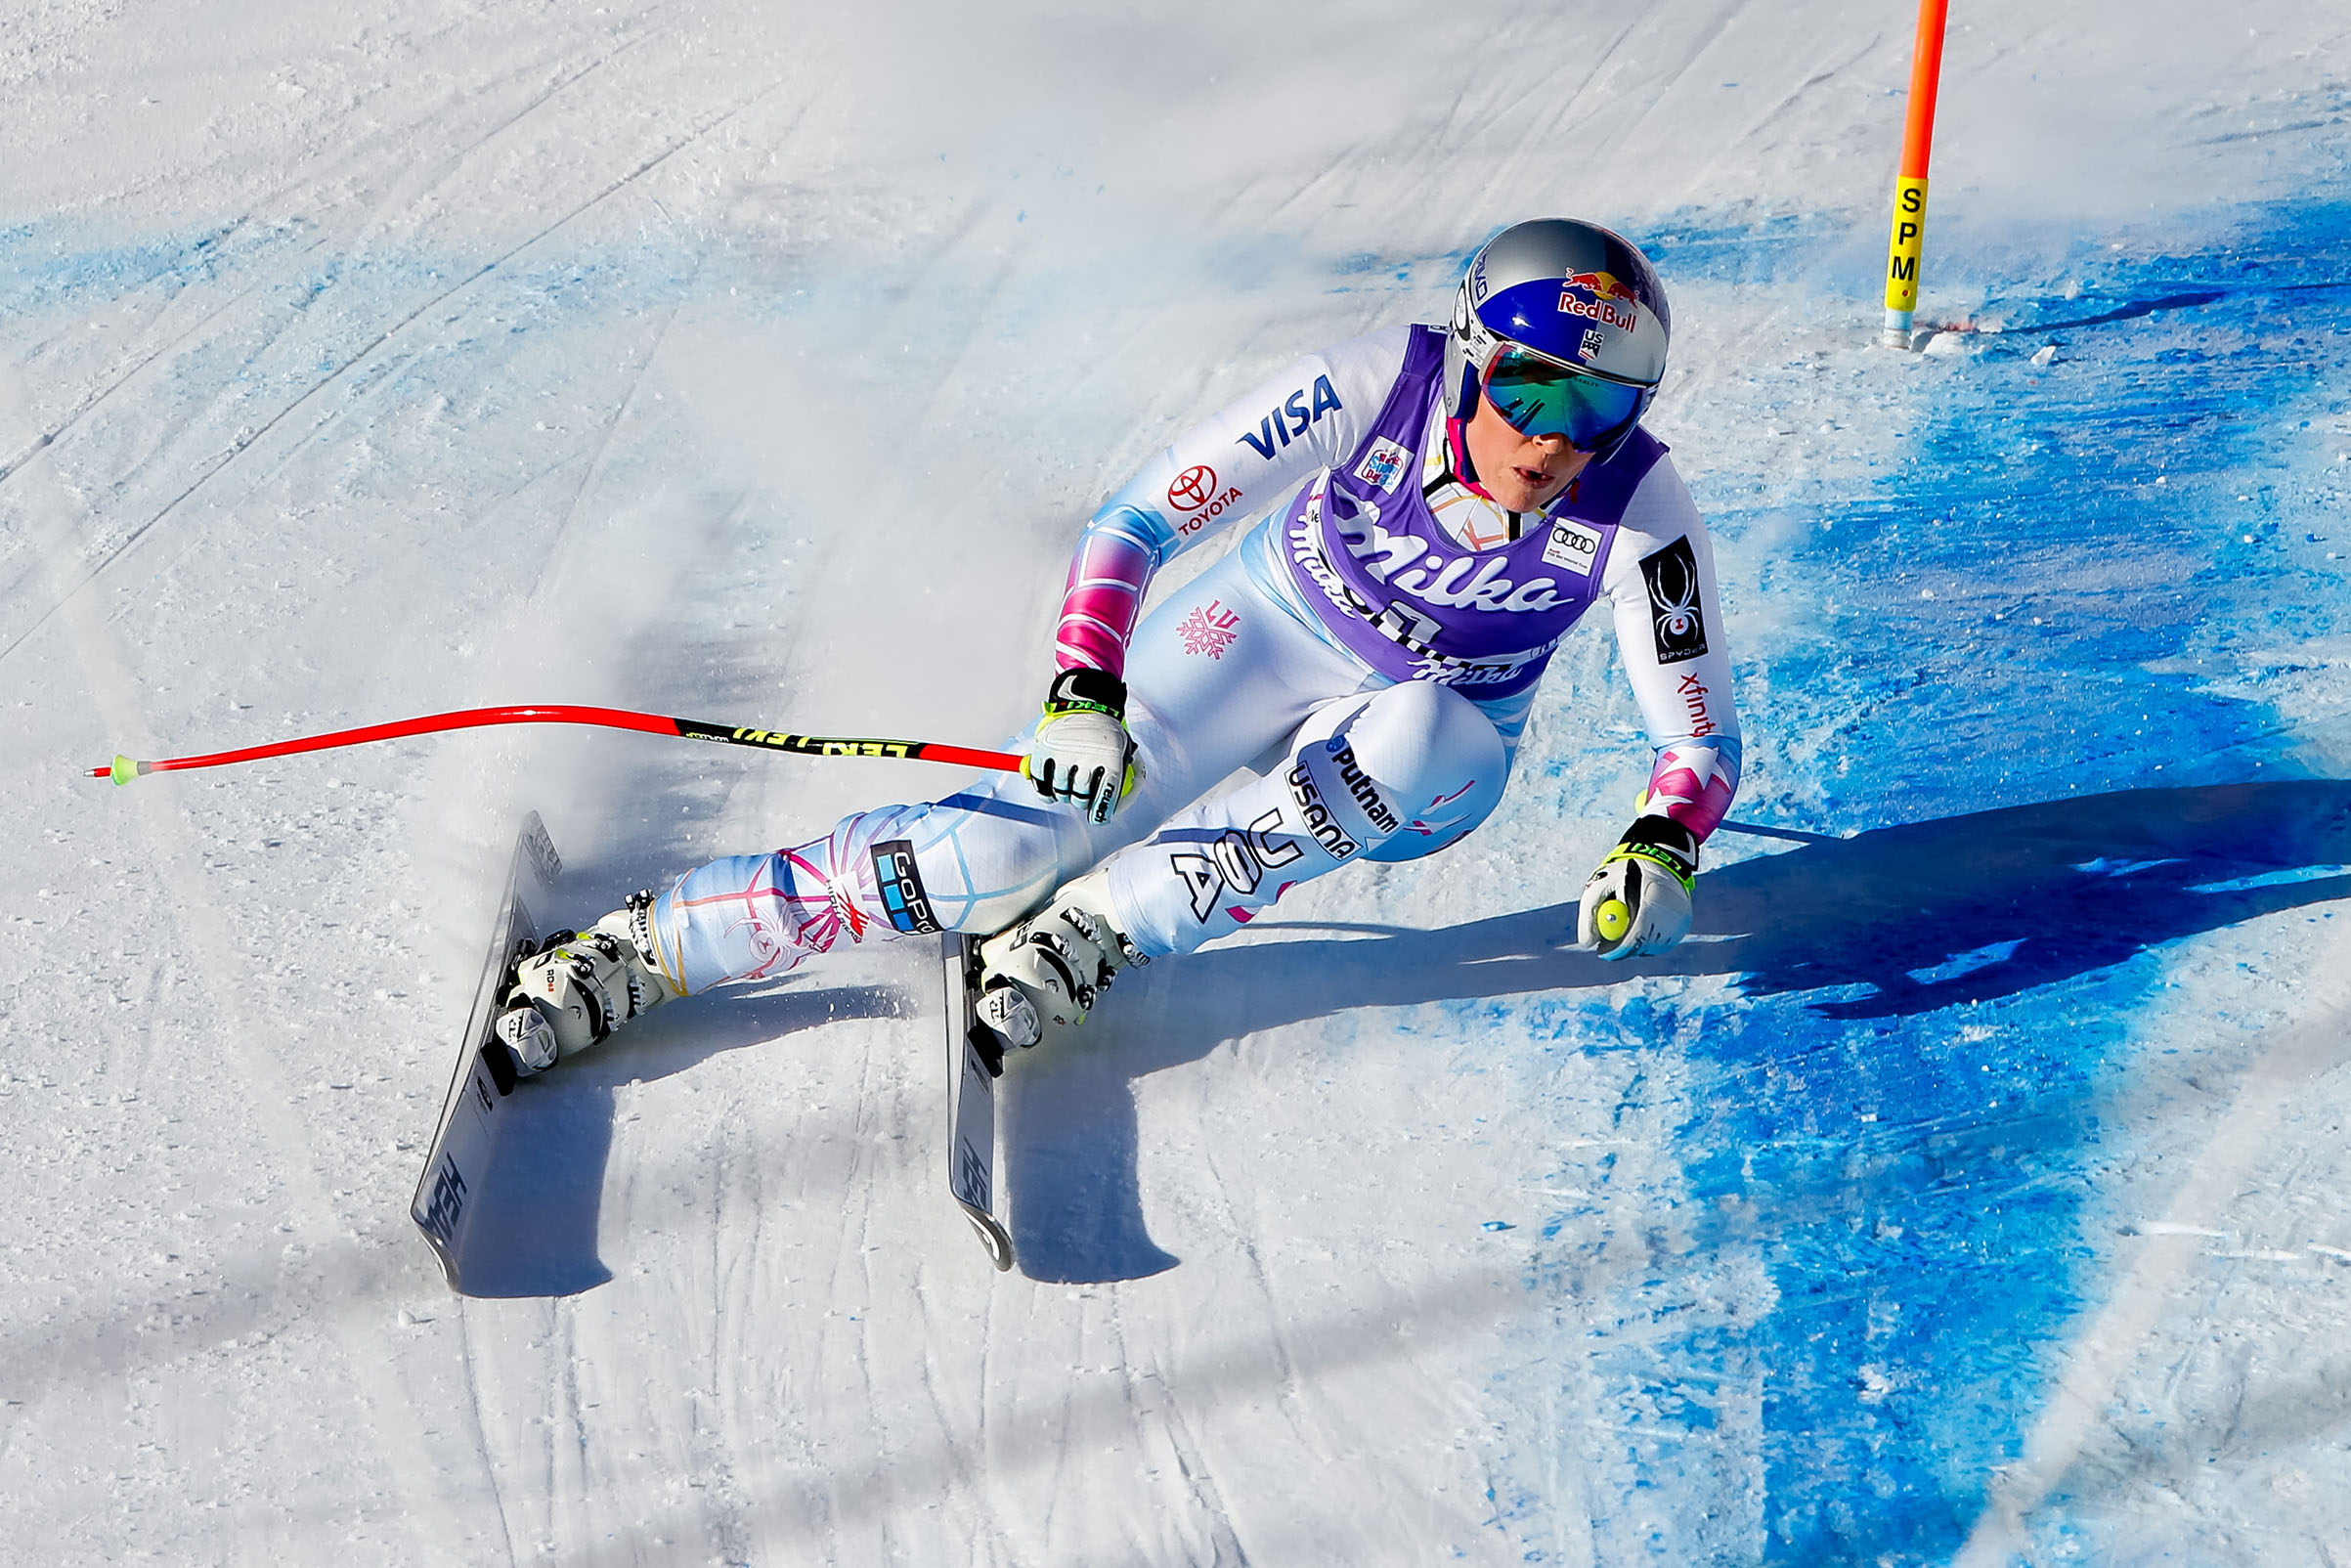 Lindsey Vonn of USA competes during the Audi FIS Alpine Ski World Cup Women's Downhill in Cortina d'Ampezzo, Italy, on Jan. 20, 2018.